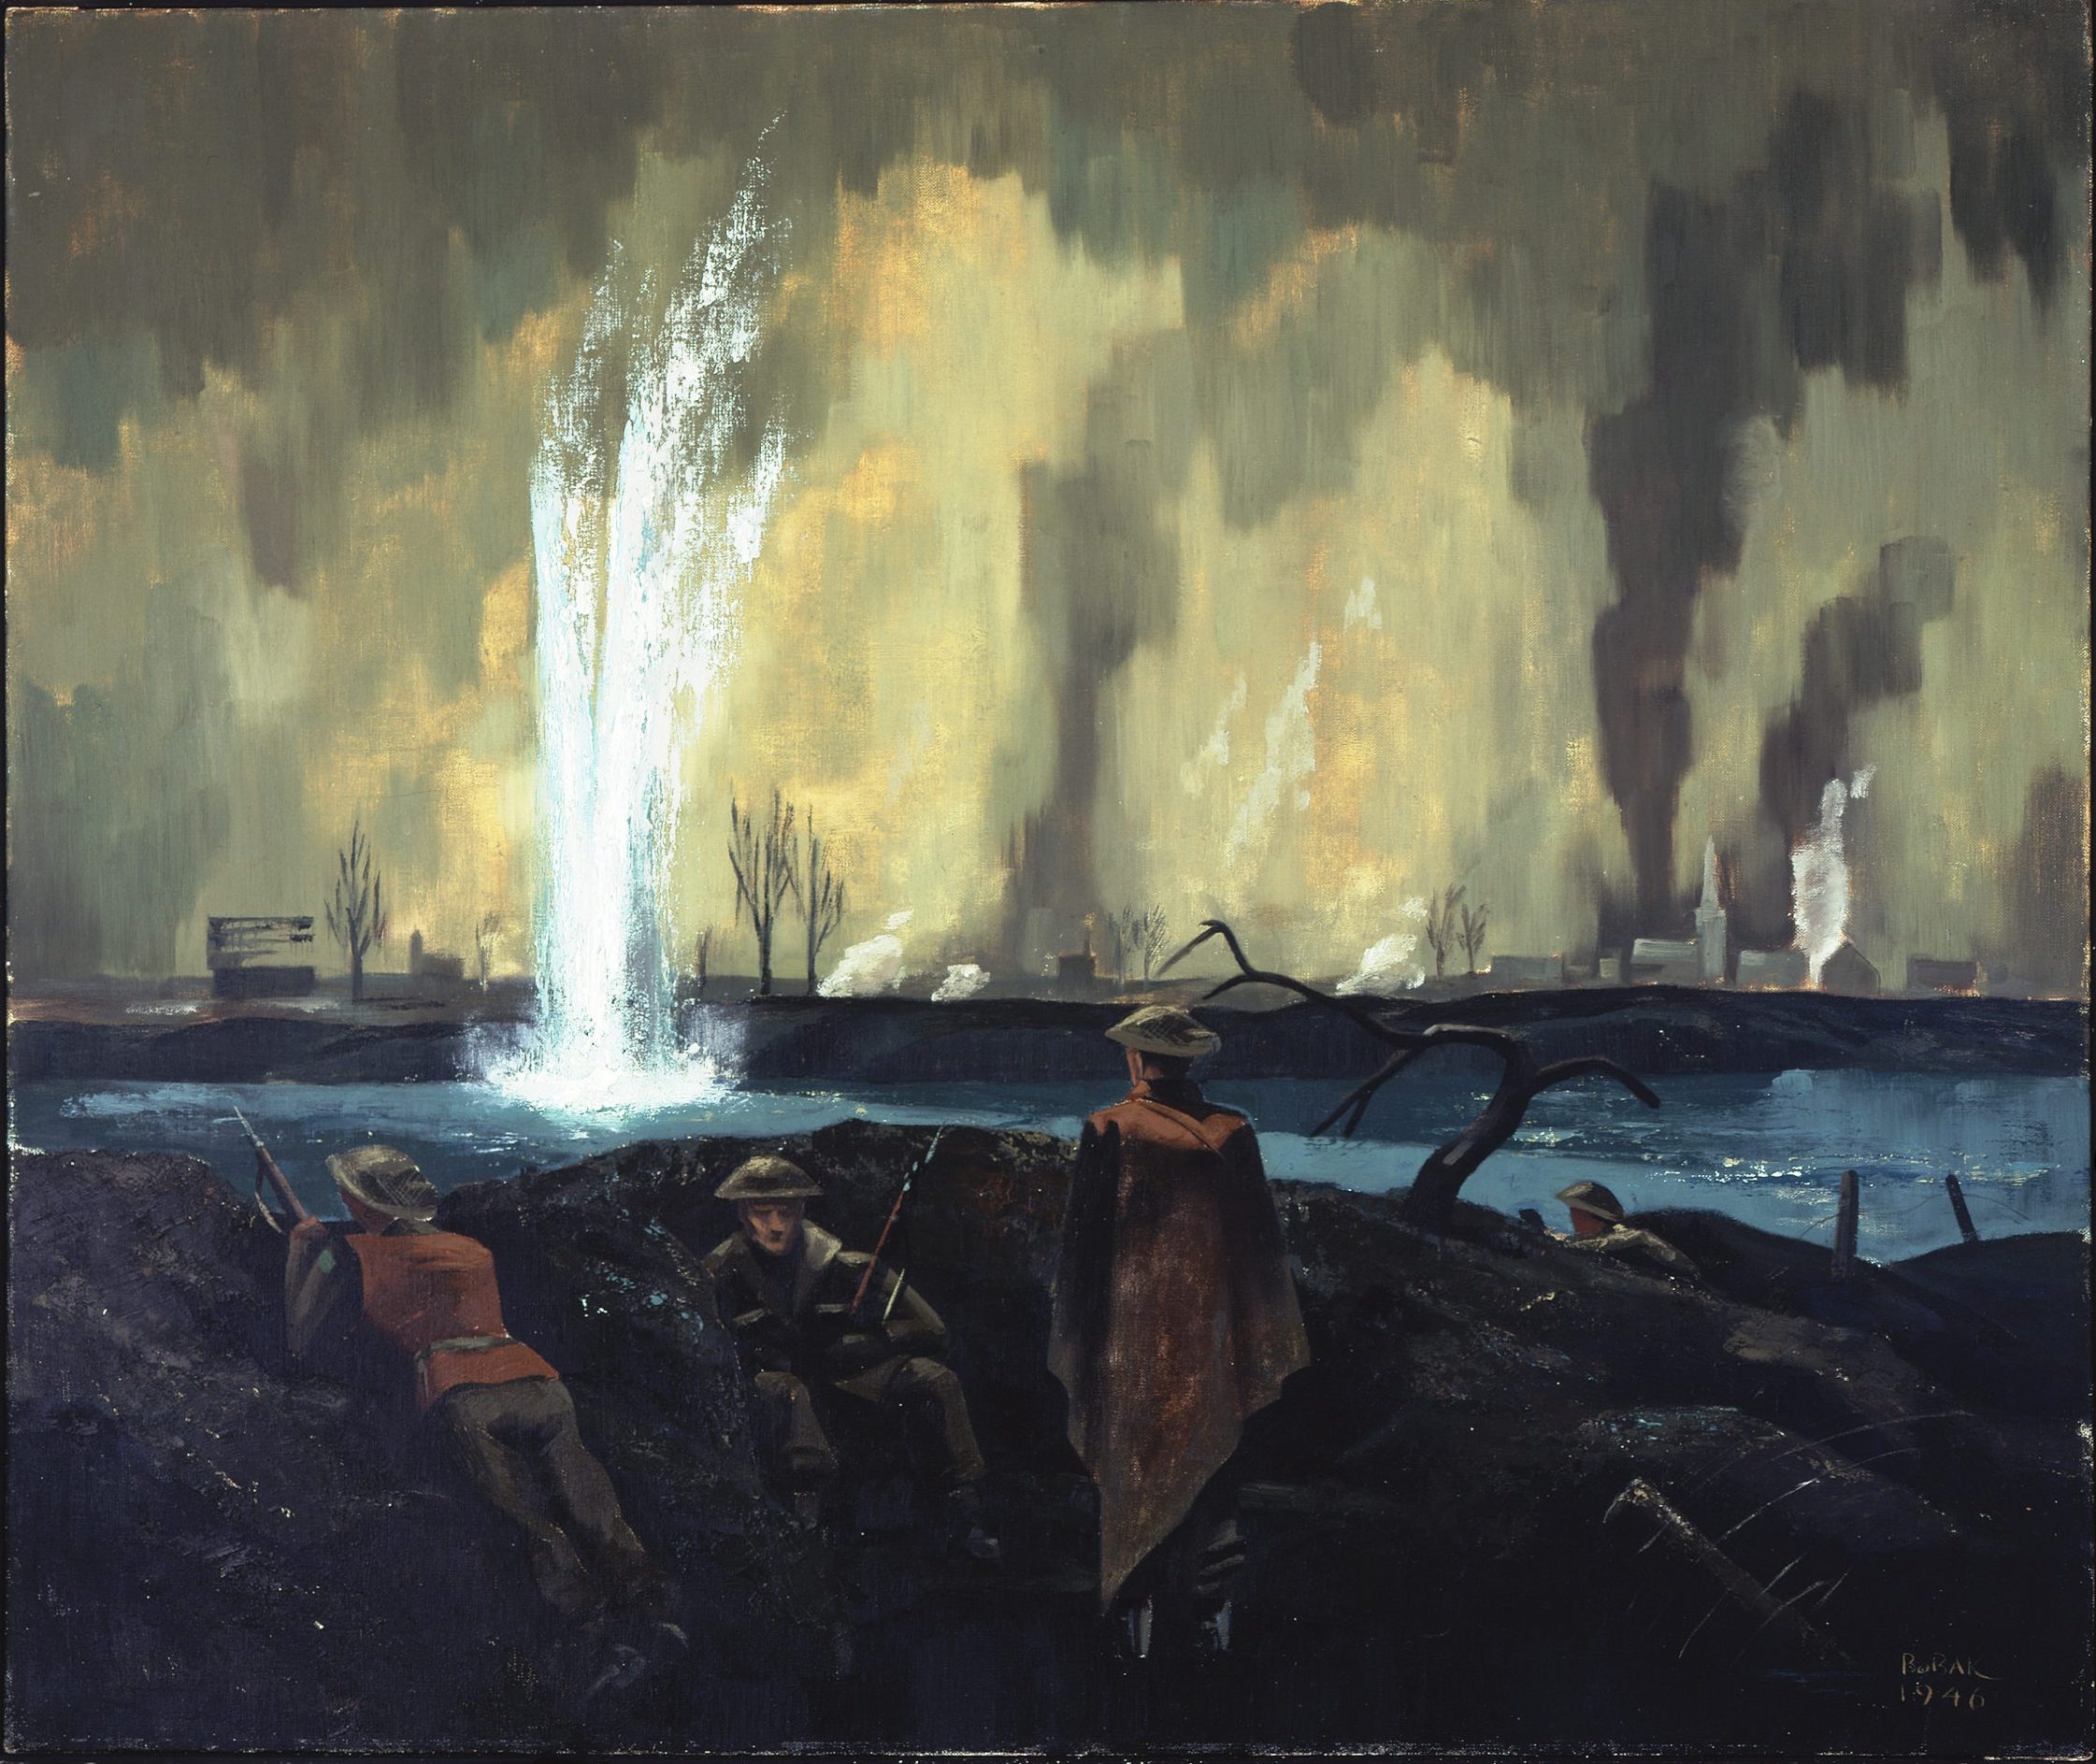 """The Maas River - February 1945"" Painting: Captain Bruno J. Boback. Found in the collection of the Canadian War Museum, 19710261-1488."